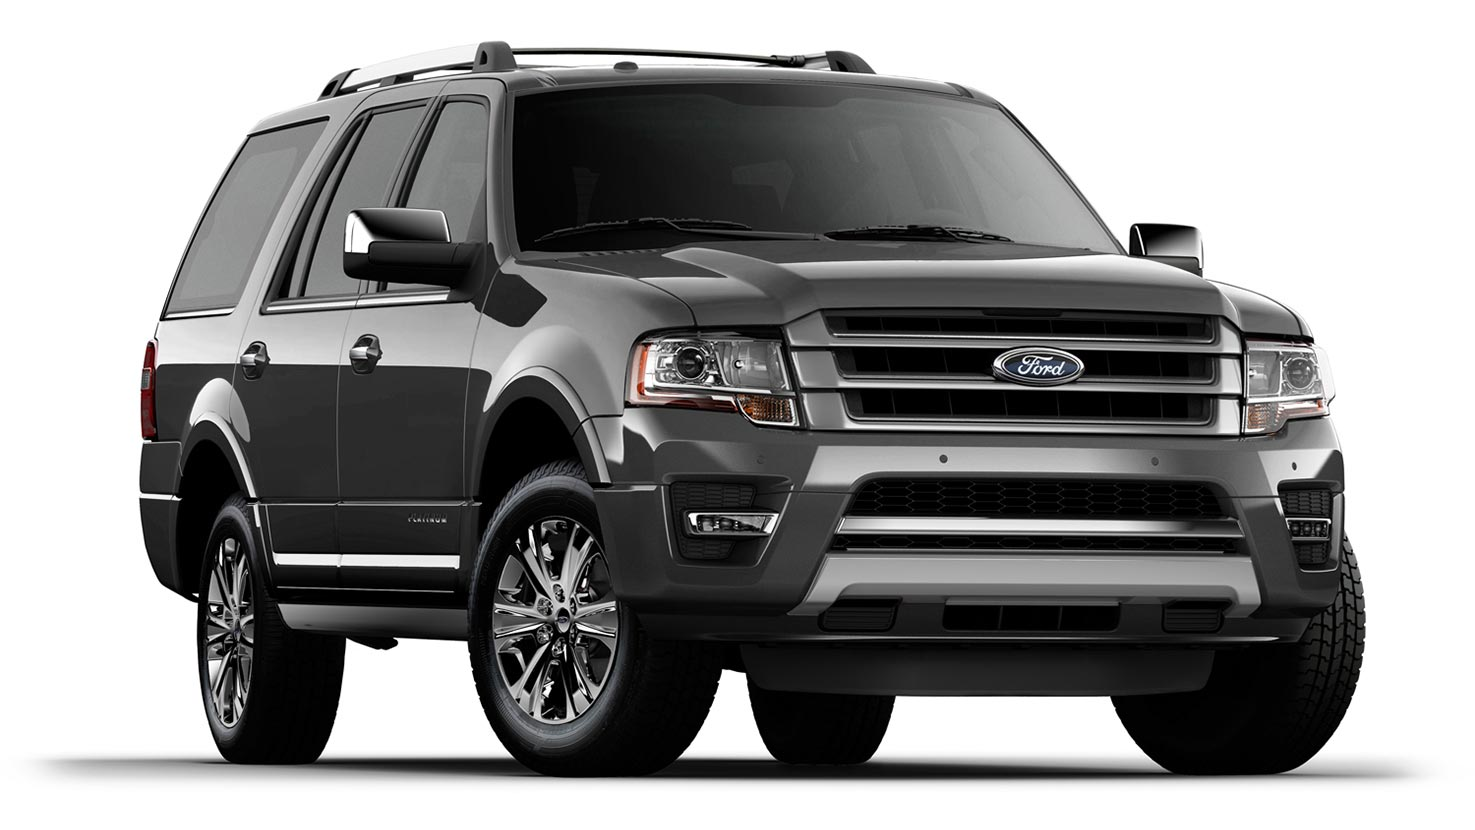 2015 Ford Expedition #13